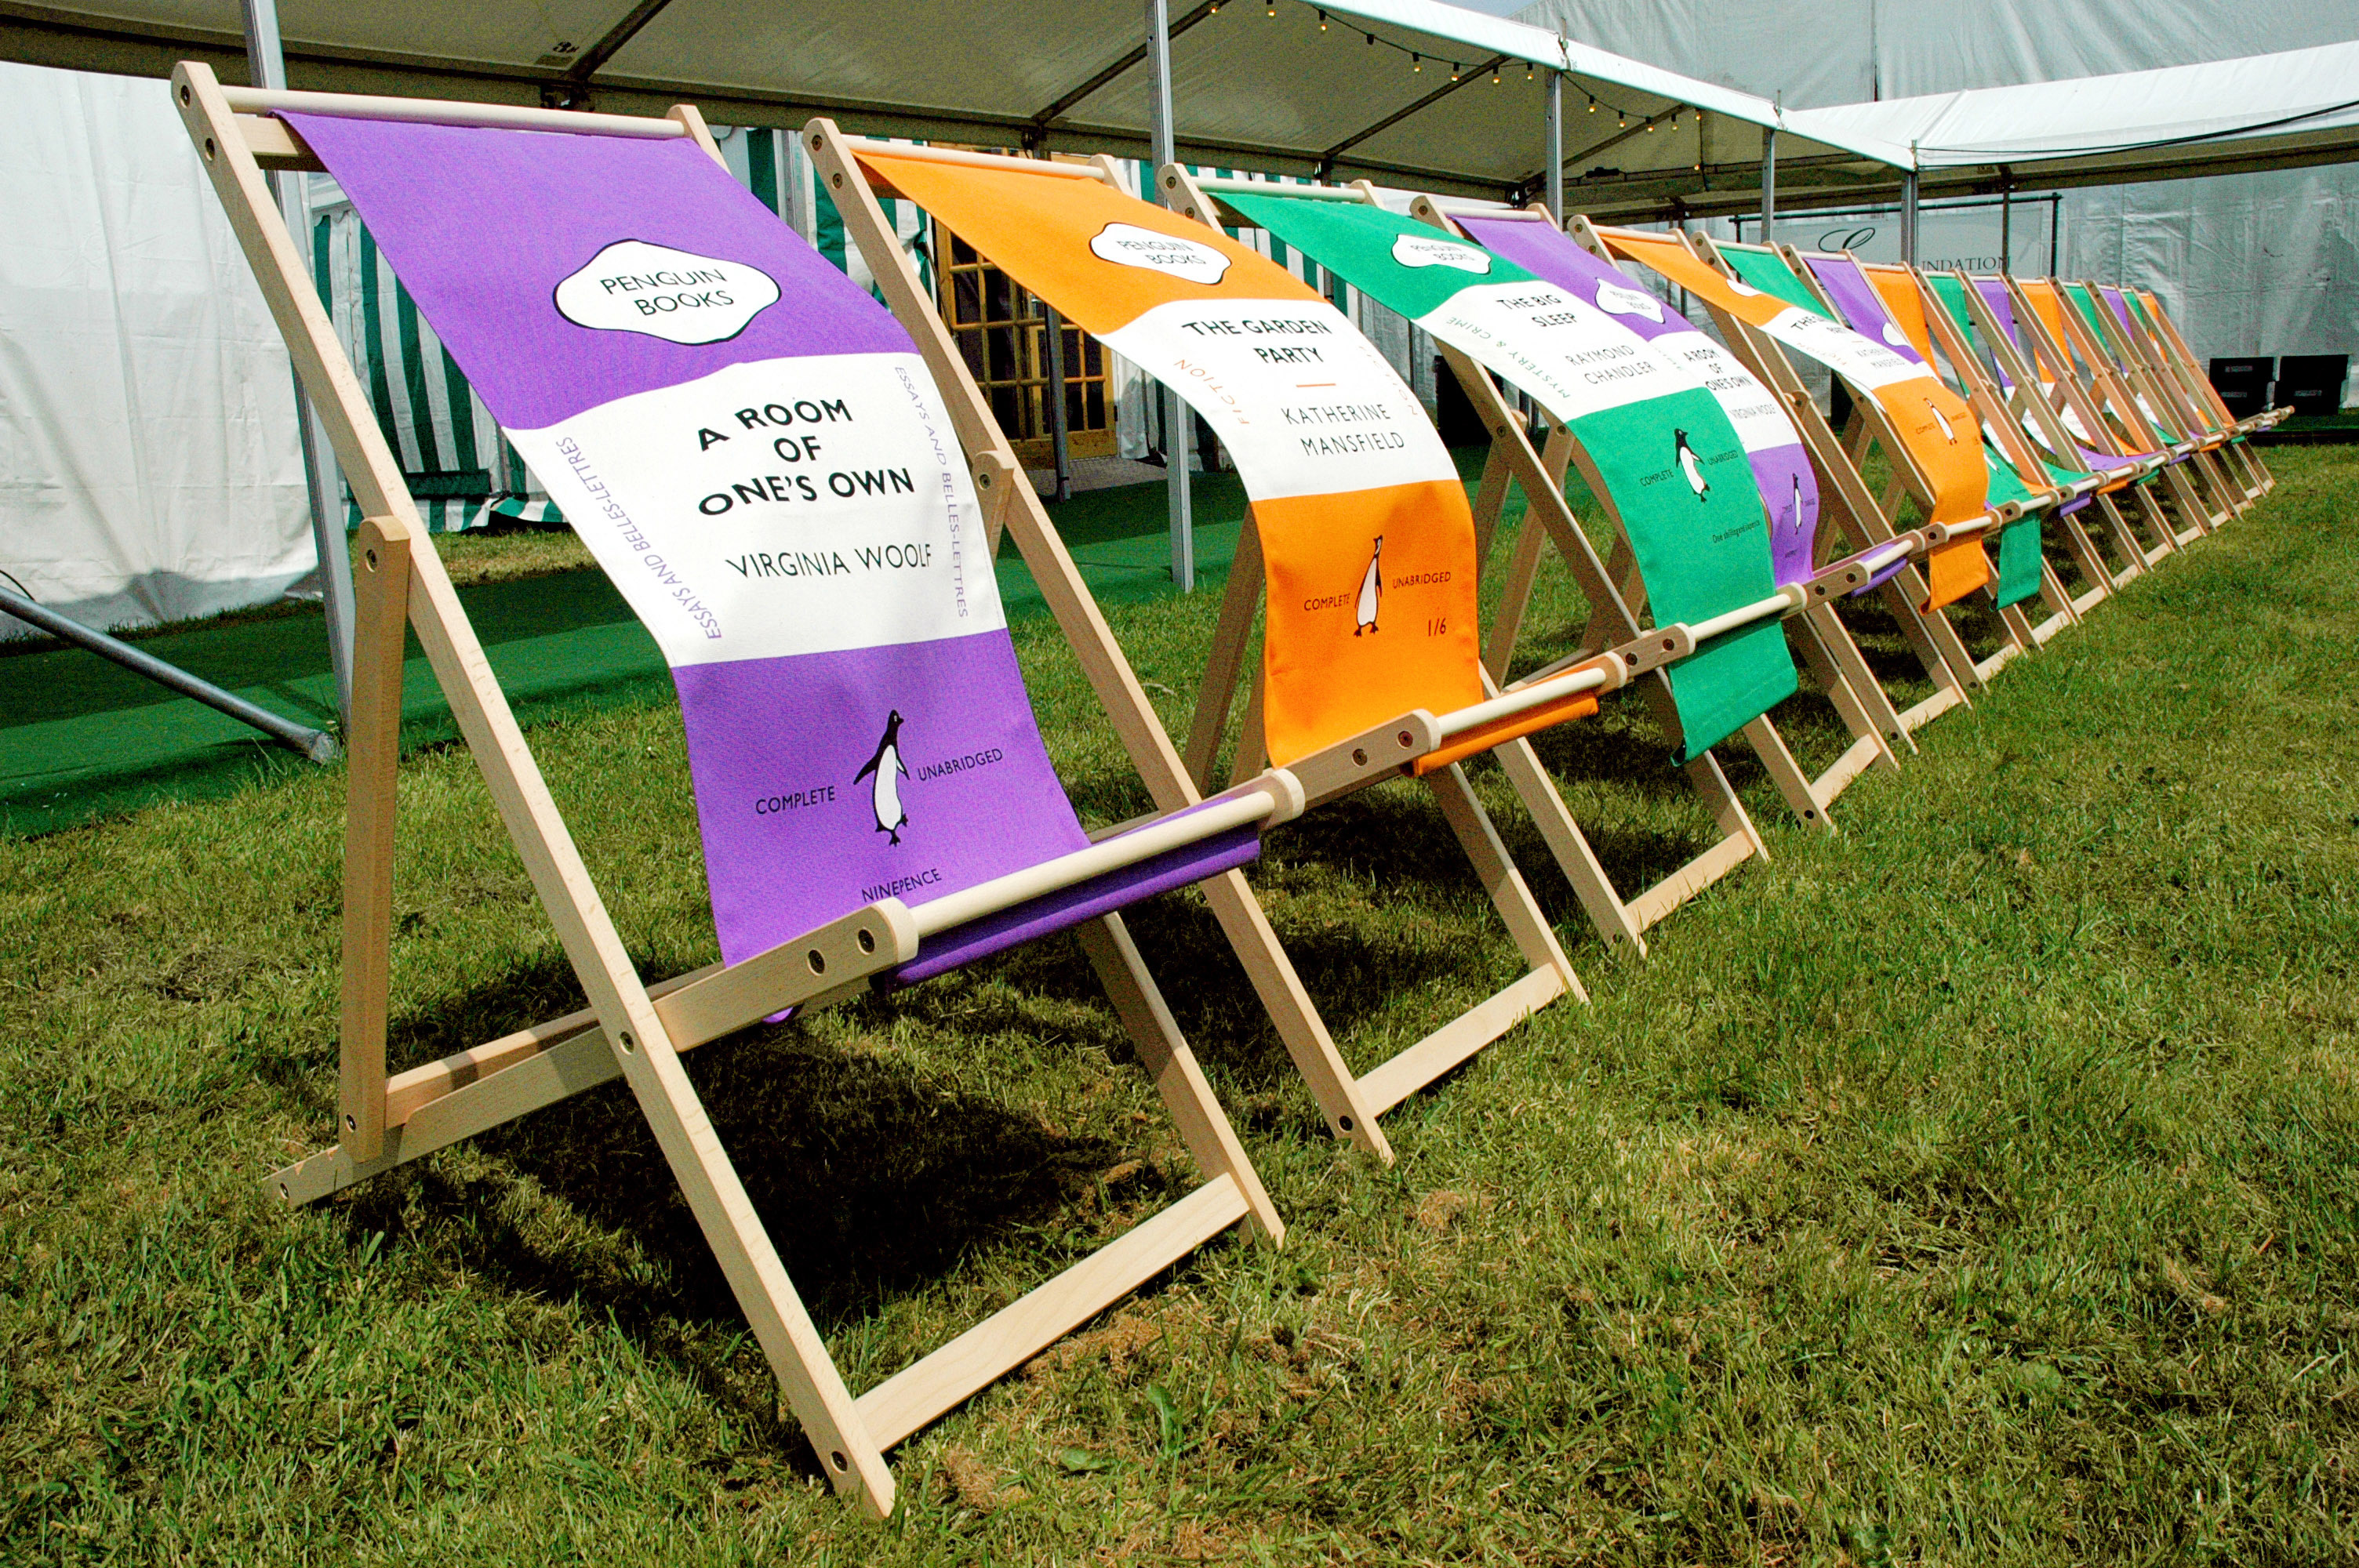 The Hay Festival: 'A Woodstock of the mind'